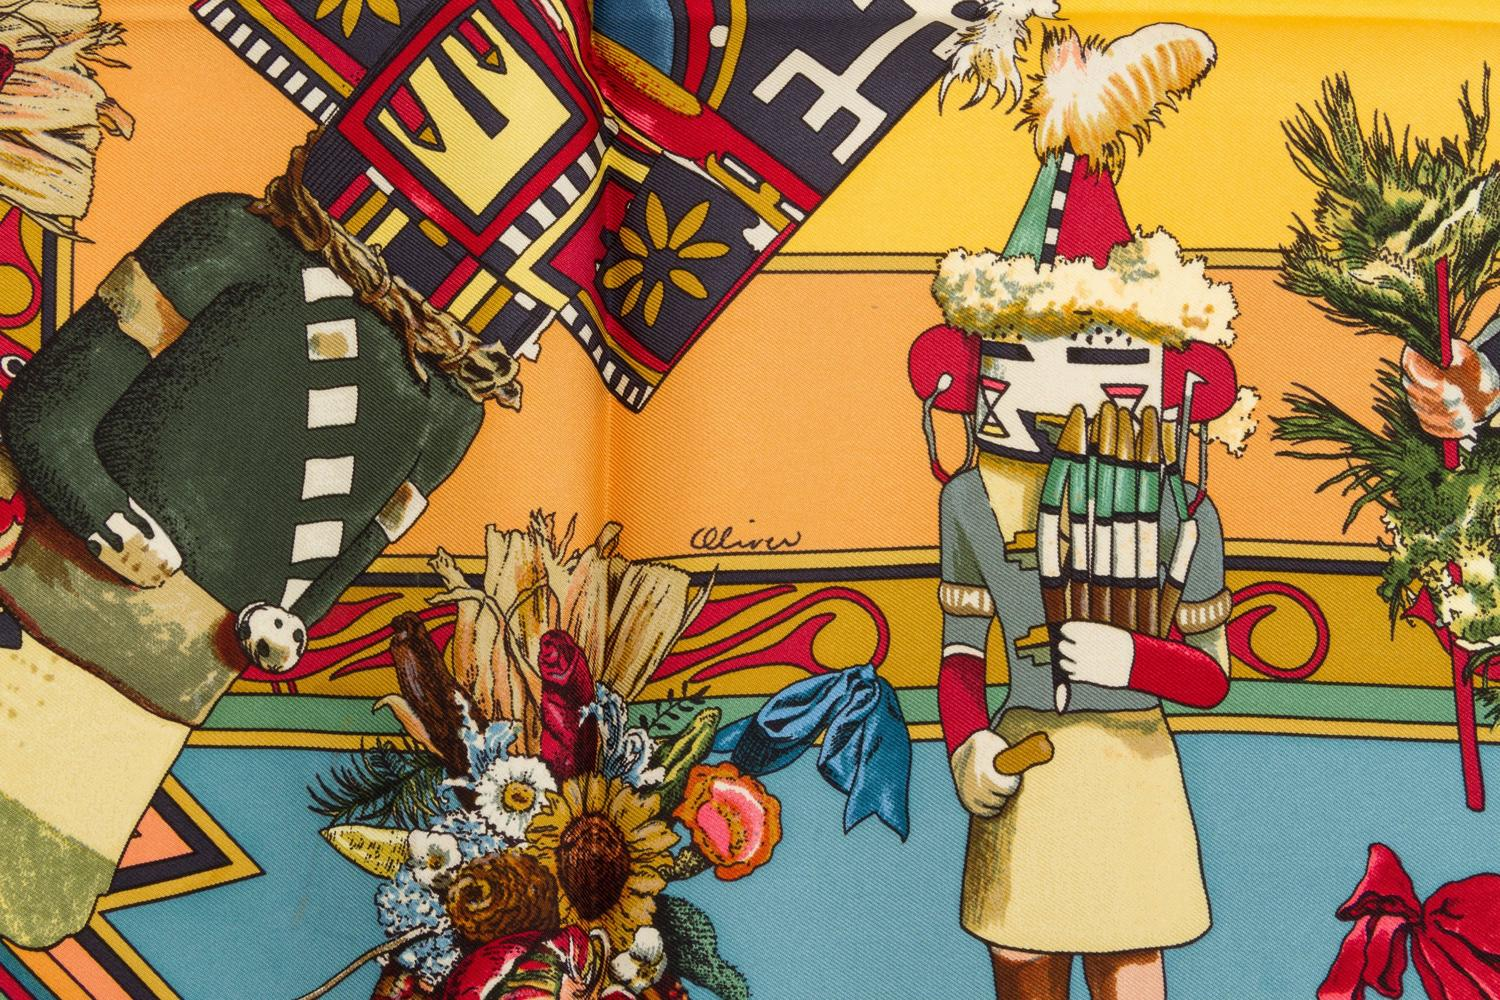 hermes kachinas silk scarf by artist kermit oliver for